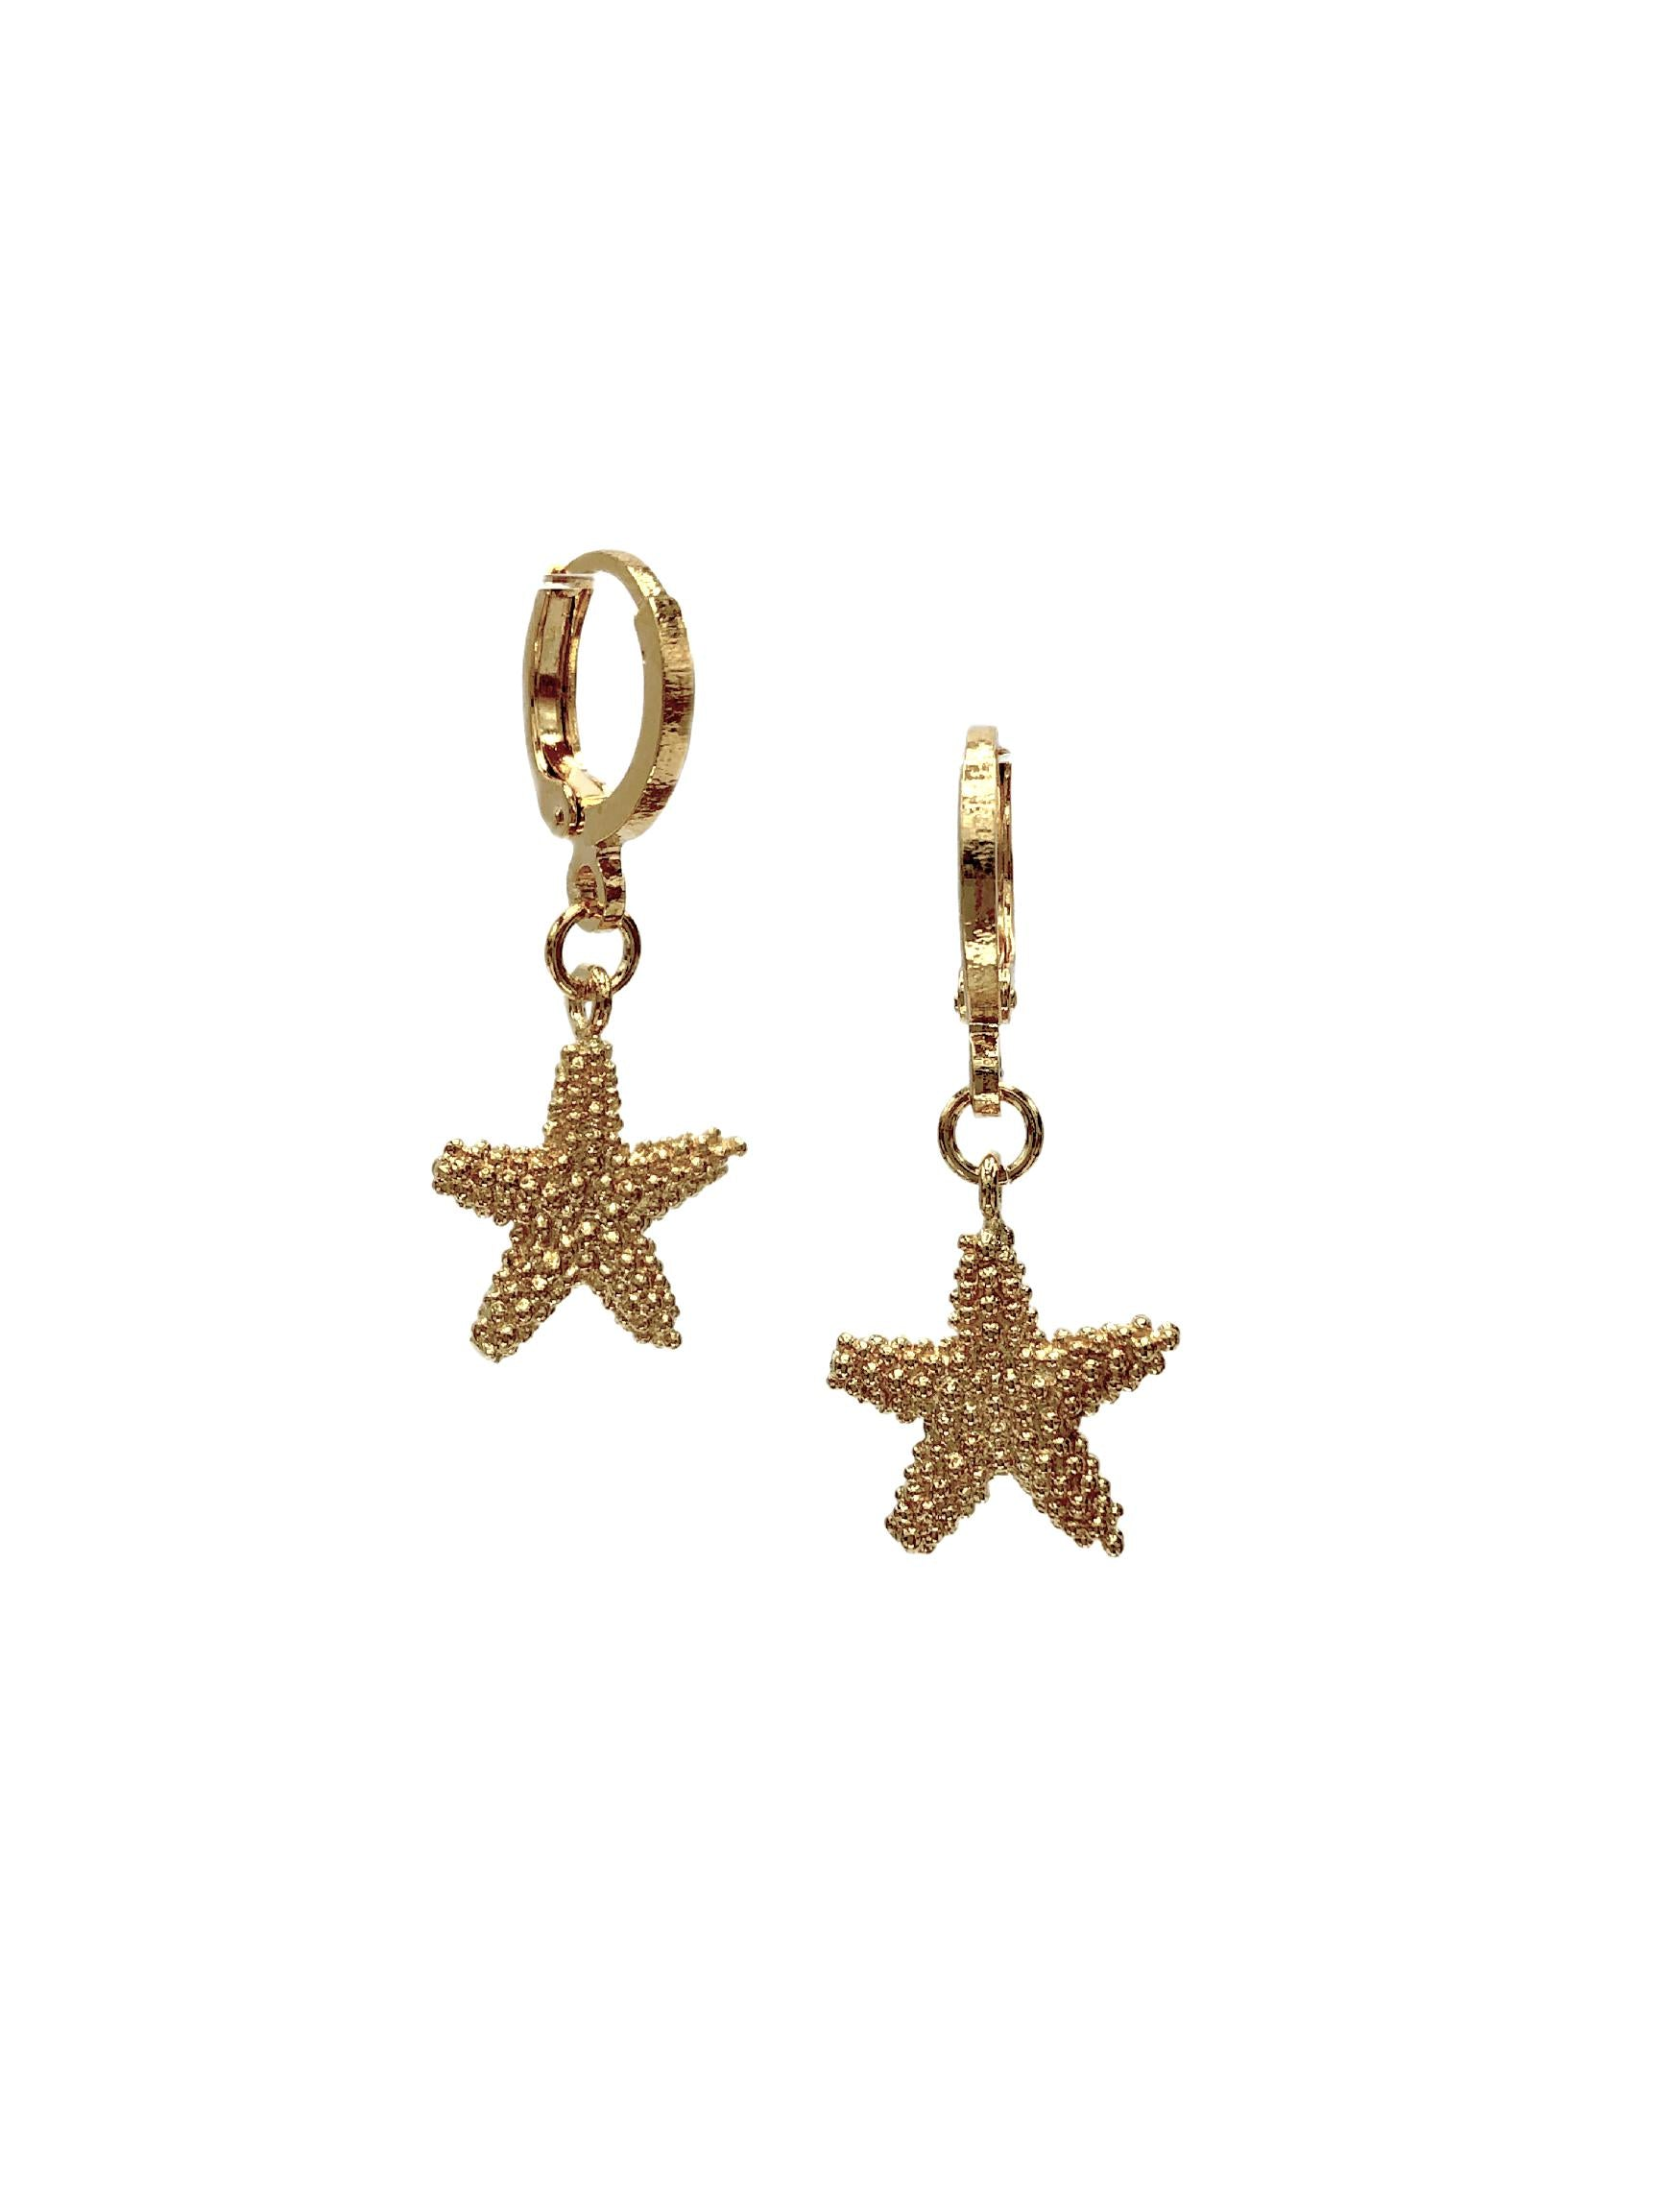 Sea Star Lever Back Earrings-Earrings-JAREDJAMIN Jewelry Online-JARED JAMIN